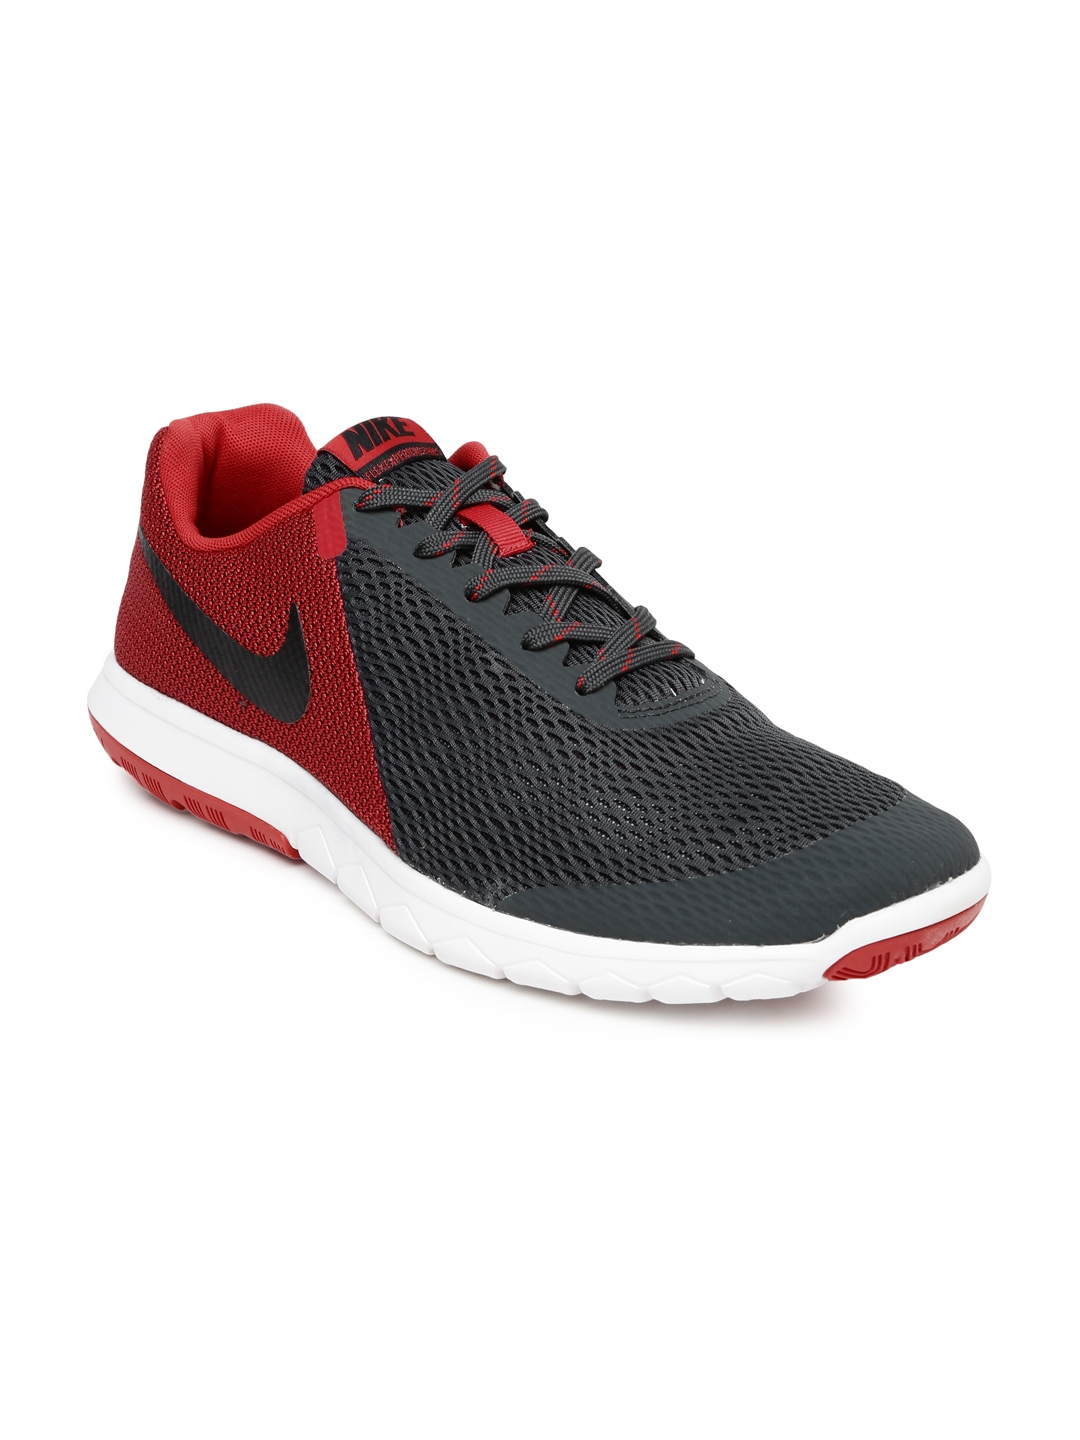 23e5d7f05b34 Buy Nike Men Charcoal Grey   Red Flex Experience RN 5 Running Shoes ...